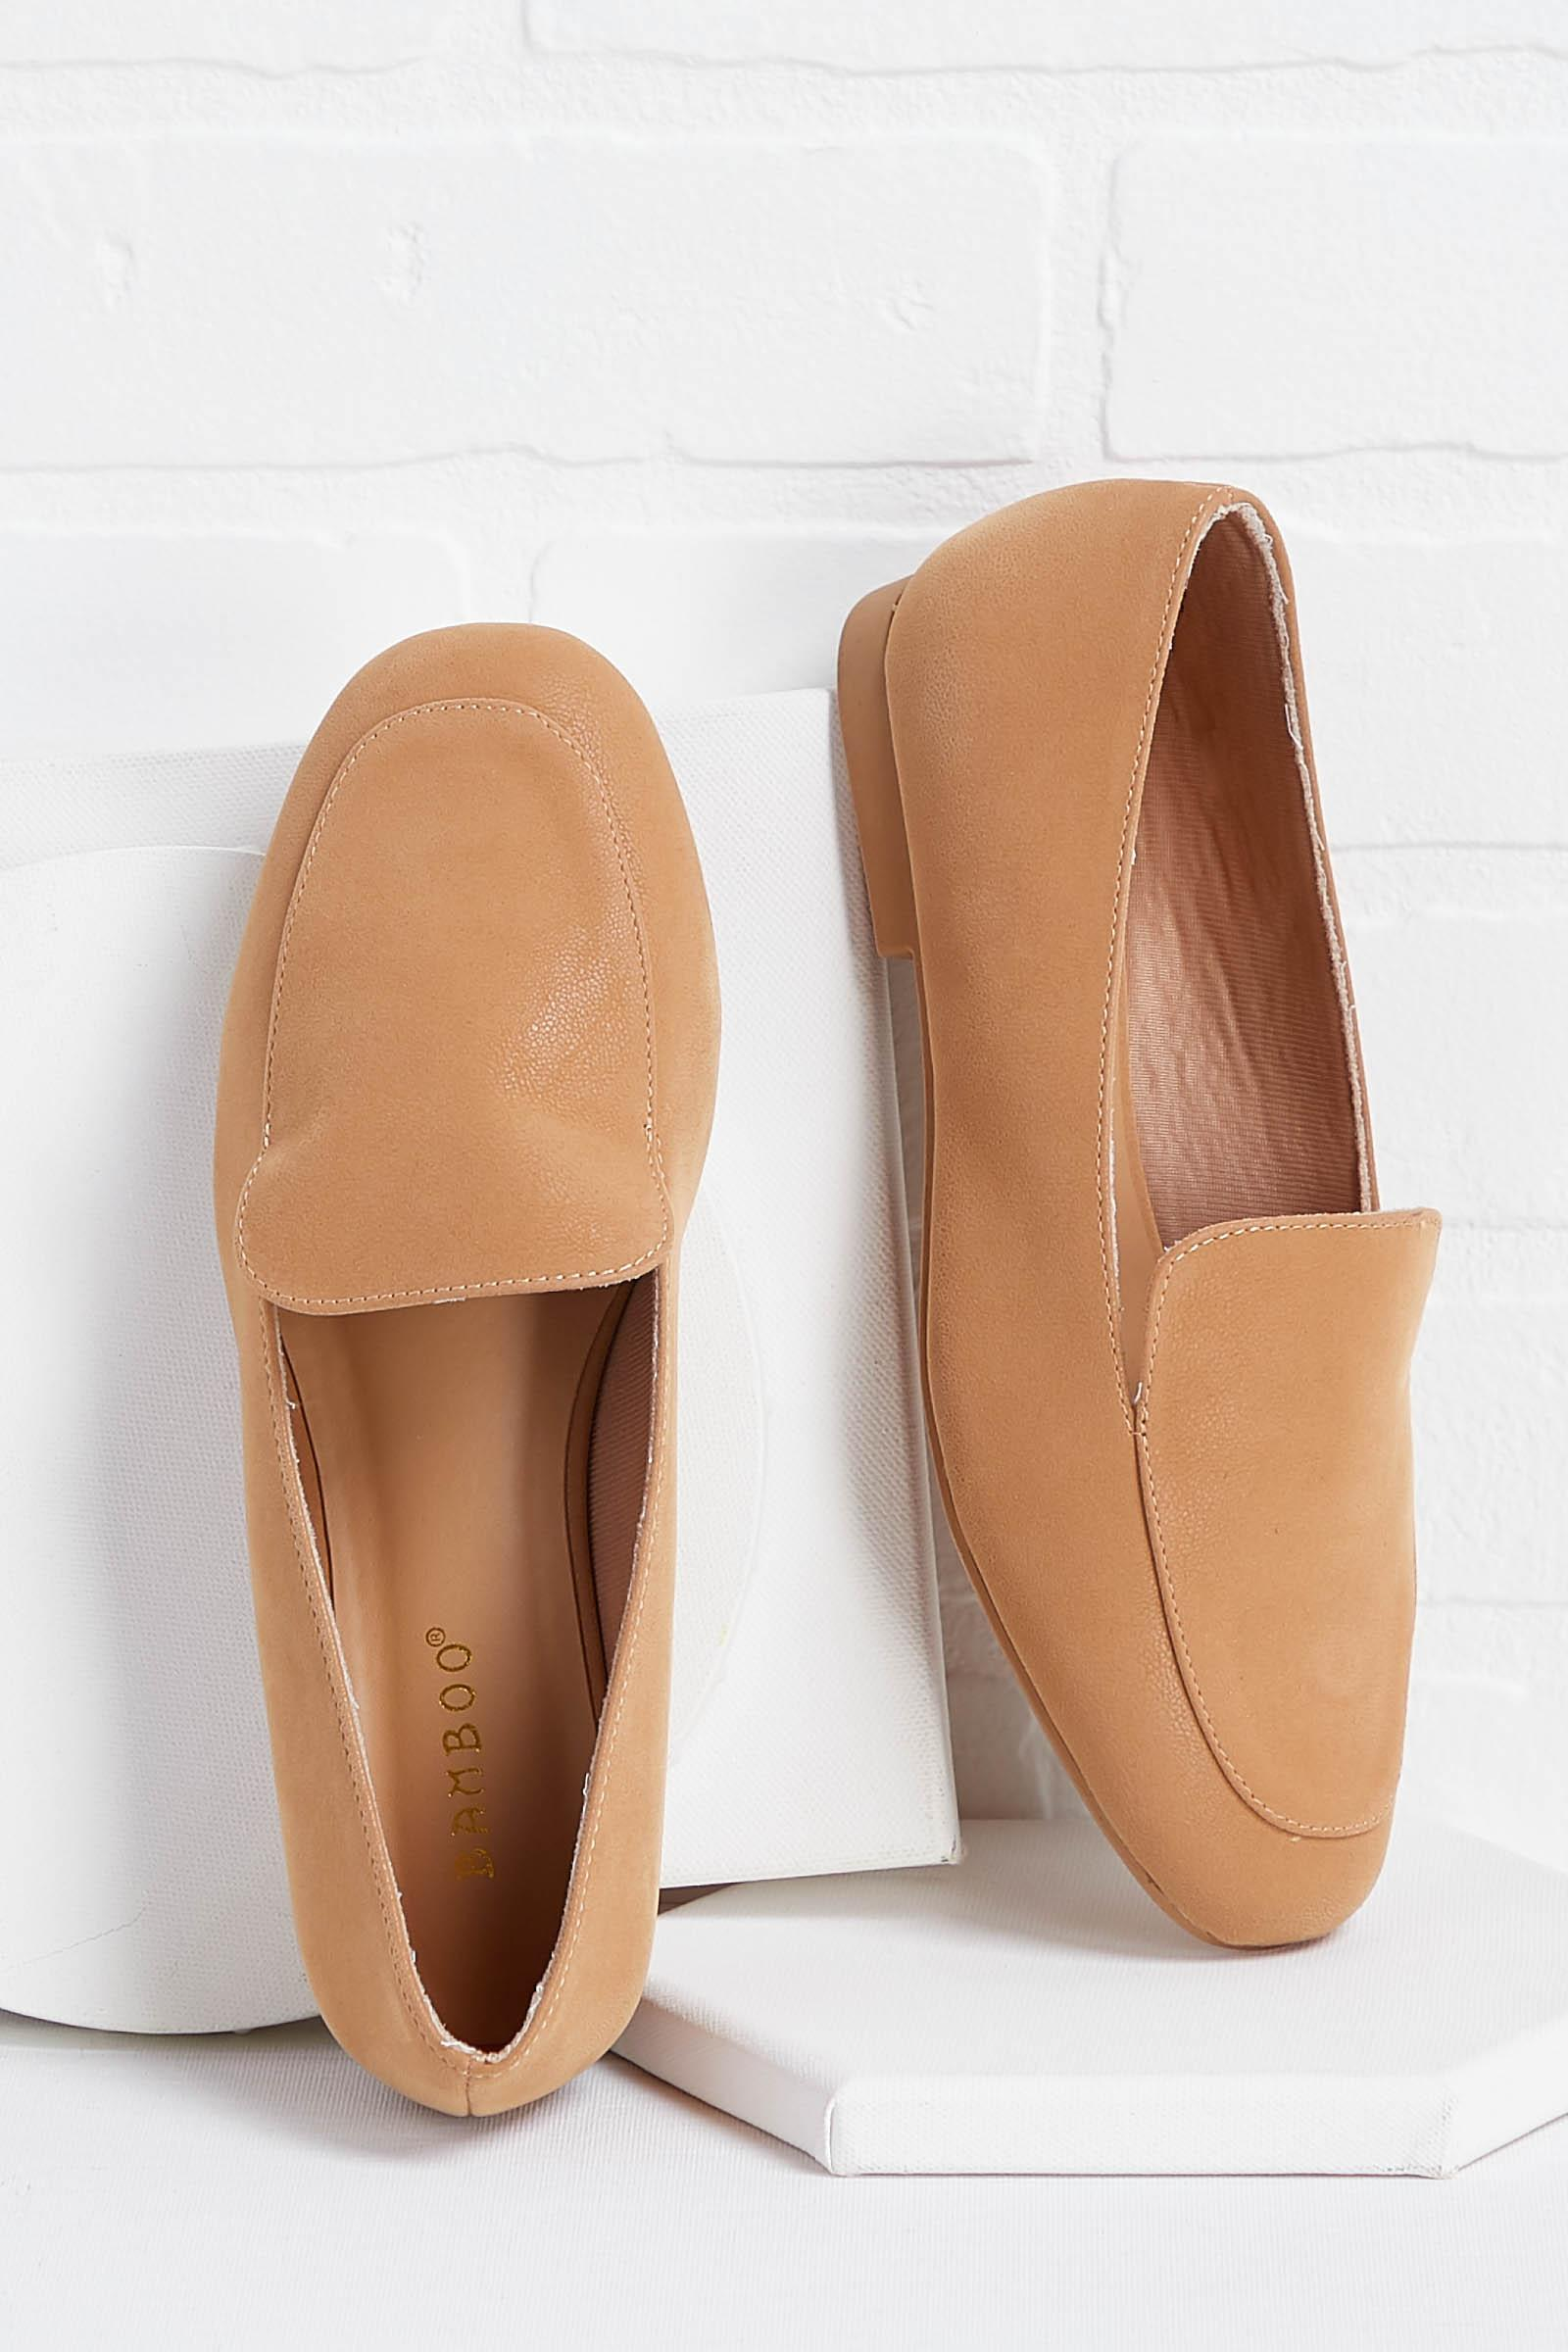 Top Of The Class Loafers